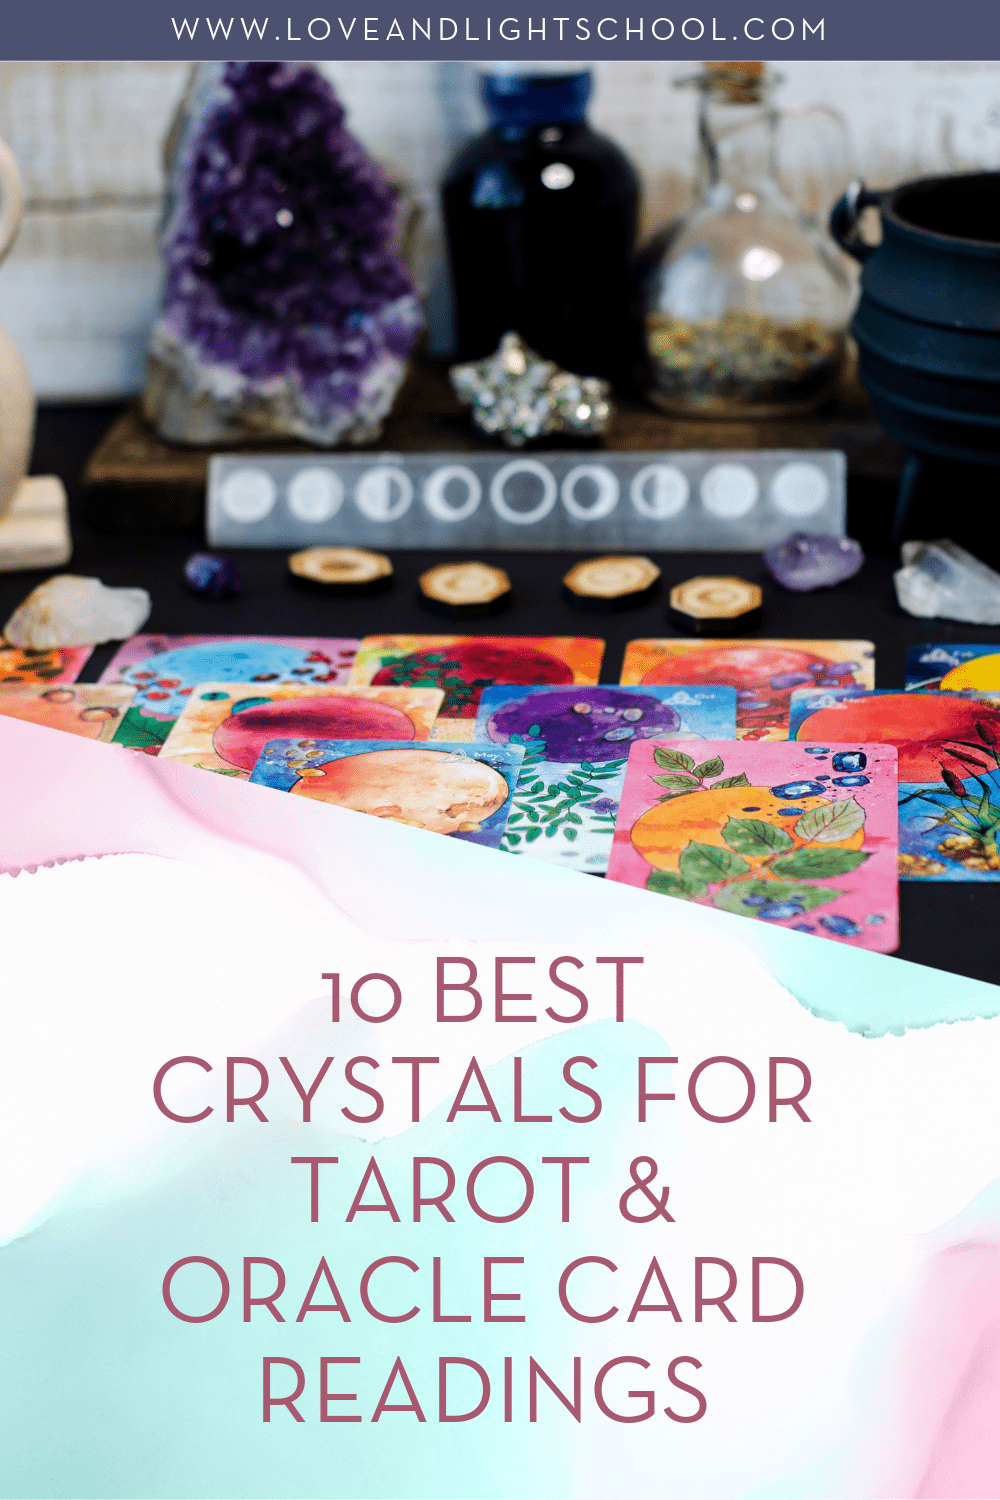 10 best crystals for Tarot